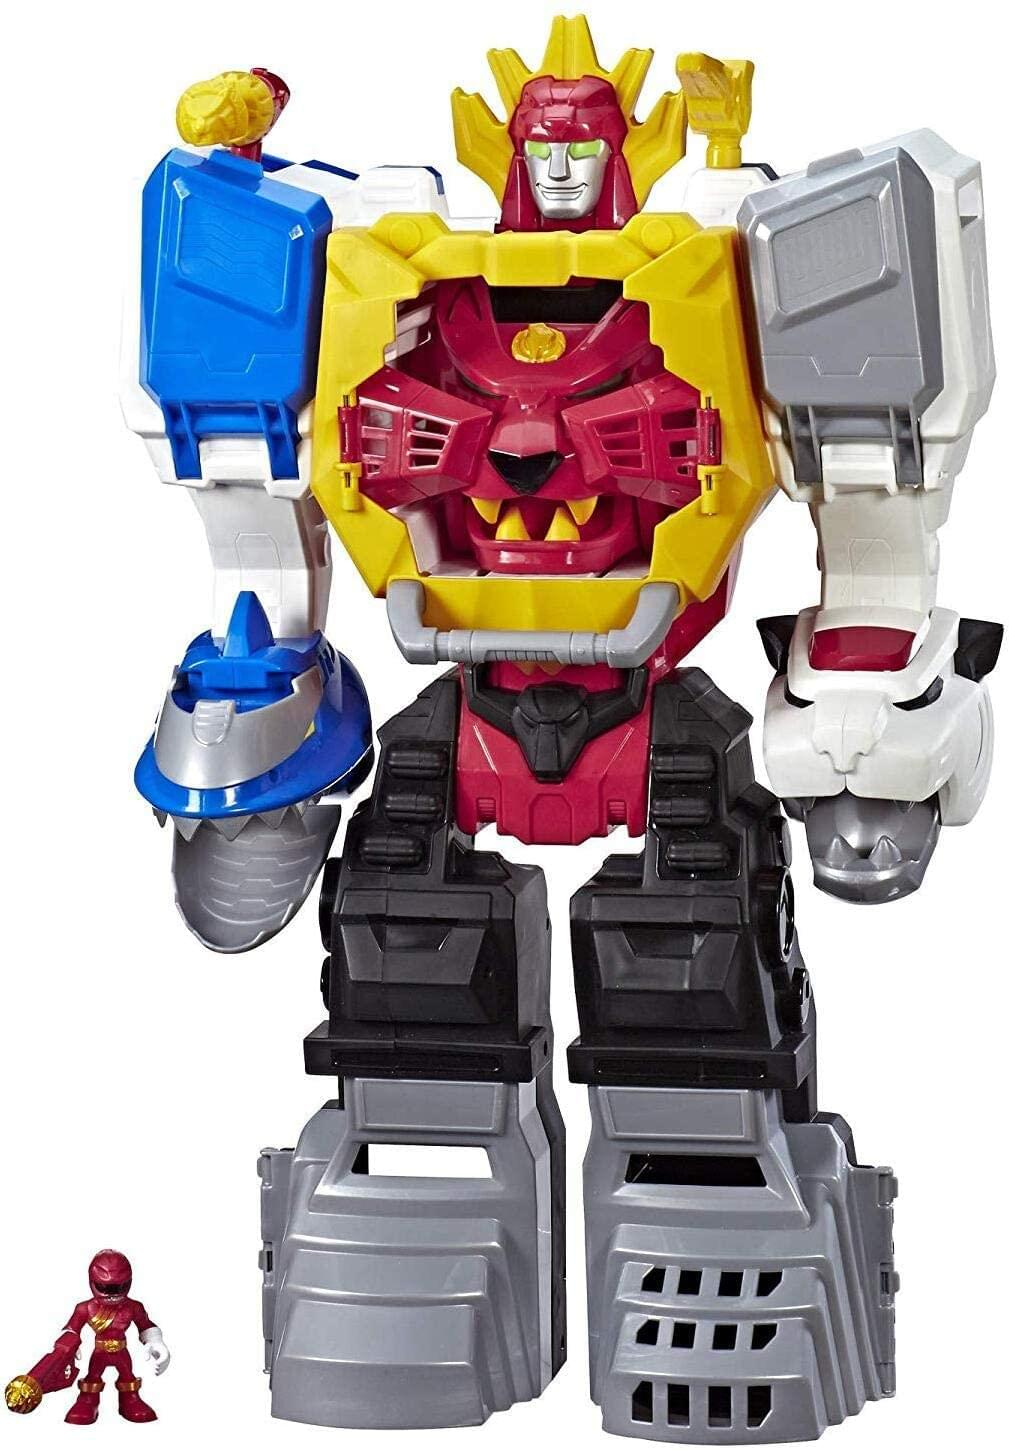 Power Rangers Electronic Power Morphin Megazord | 2-in-1 Converting Playset